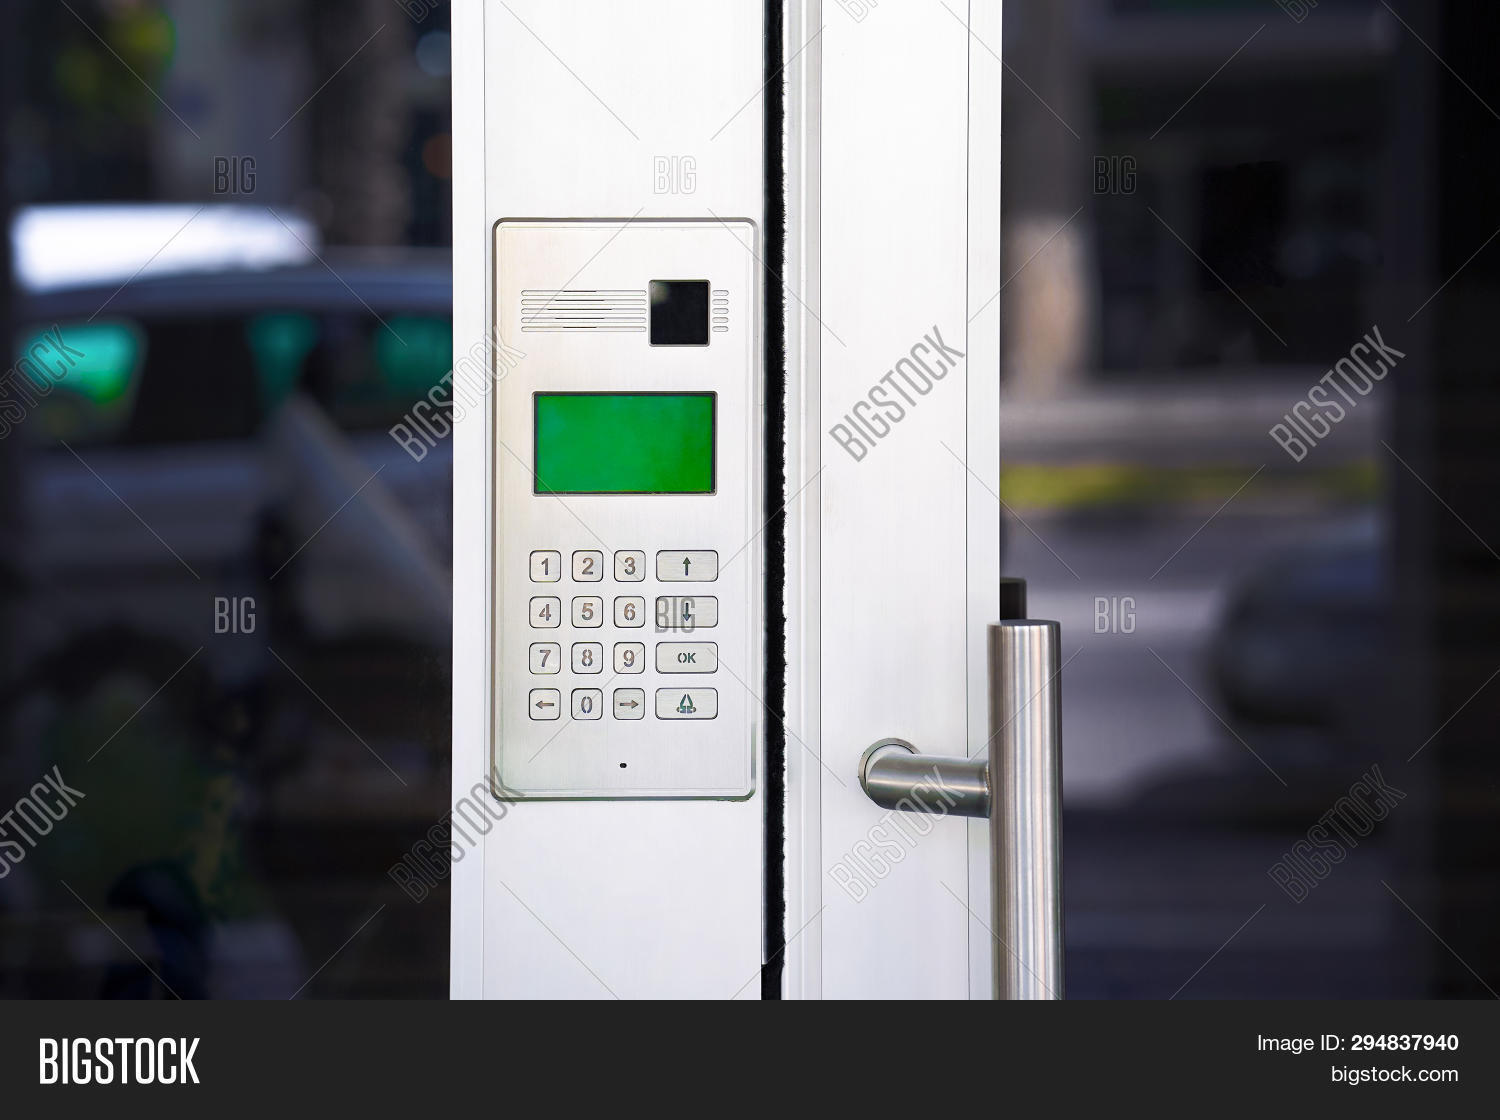 access,alarm,background,banking,bell,building,business,button,close,code,combination,control,device,digital,door,electronic,entrance,entry,equipment,facility,gate,hand,home,house,intercom,key,keyboard,keypad,lock,modern,number,numeric,office,open,pad,pass,password,person,press,protection,public,push,push-button,safety,secure,security,system,technology,wall